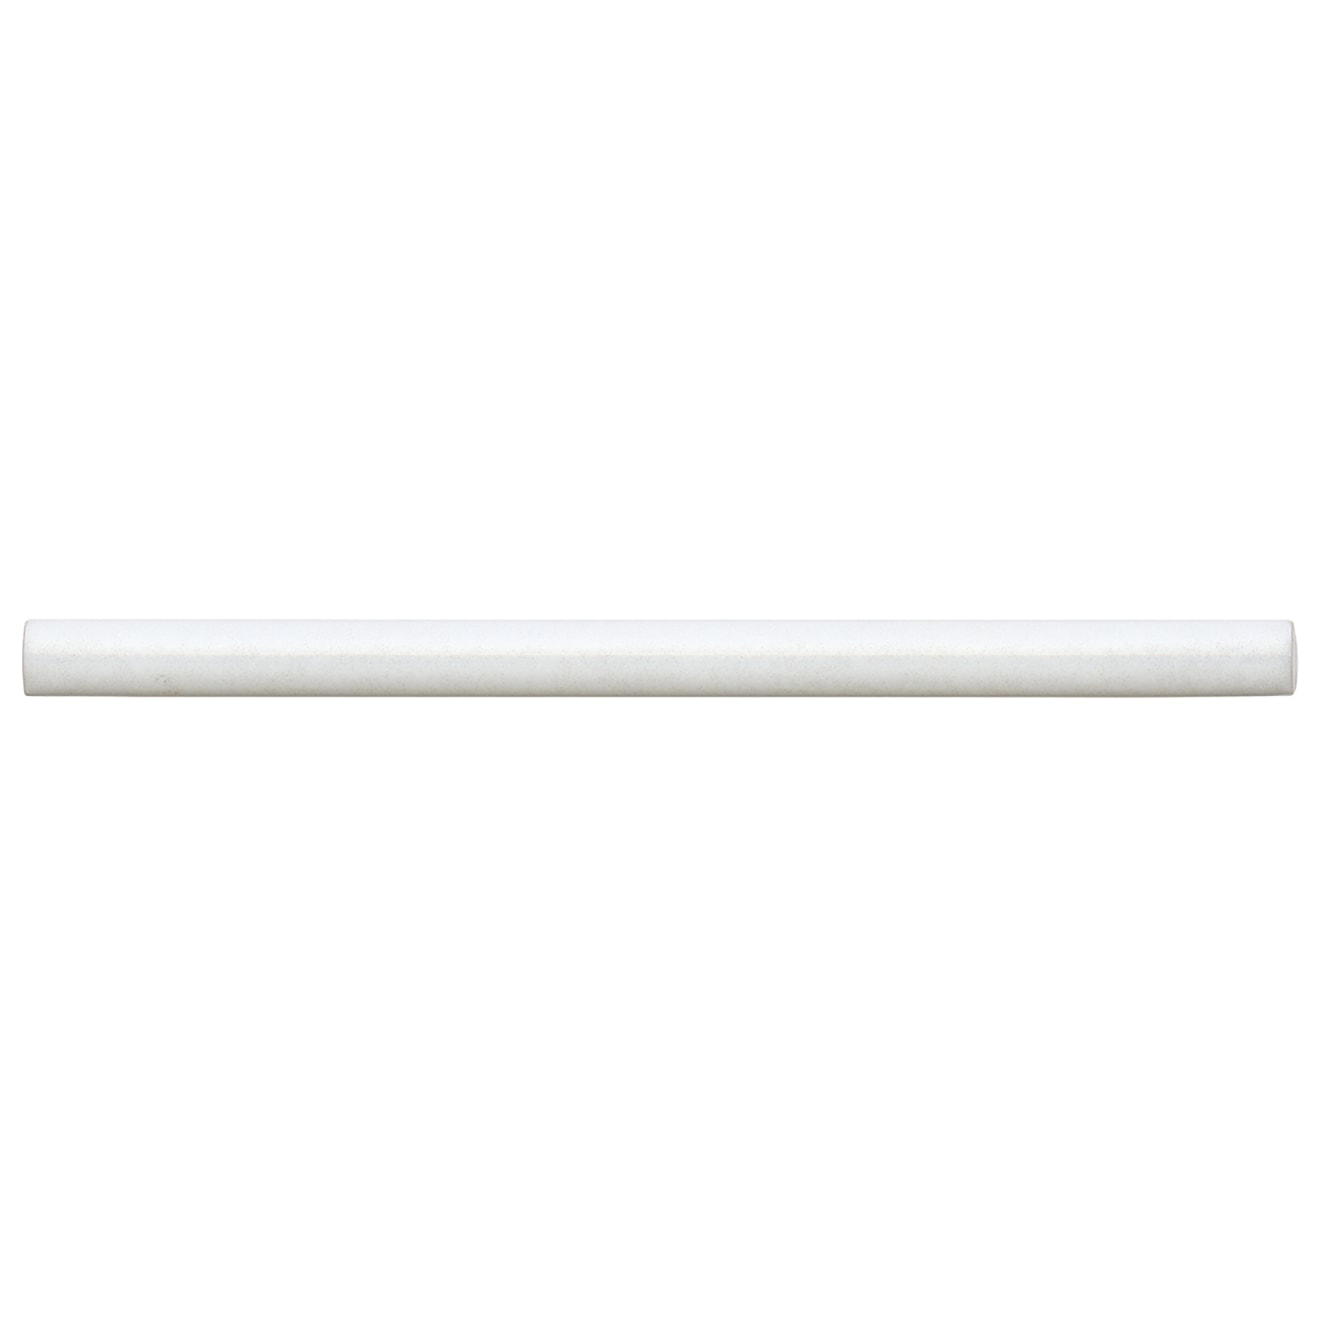 "Cloe 0.5"" x 8"" Trim in White"